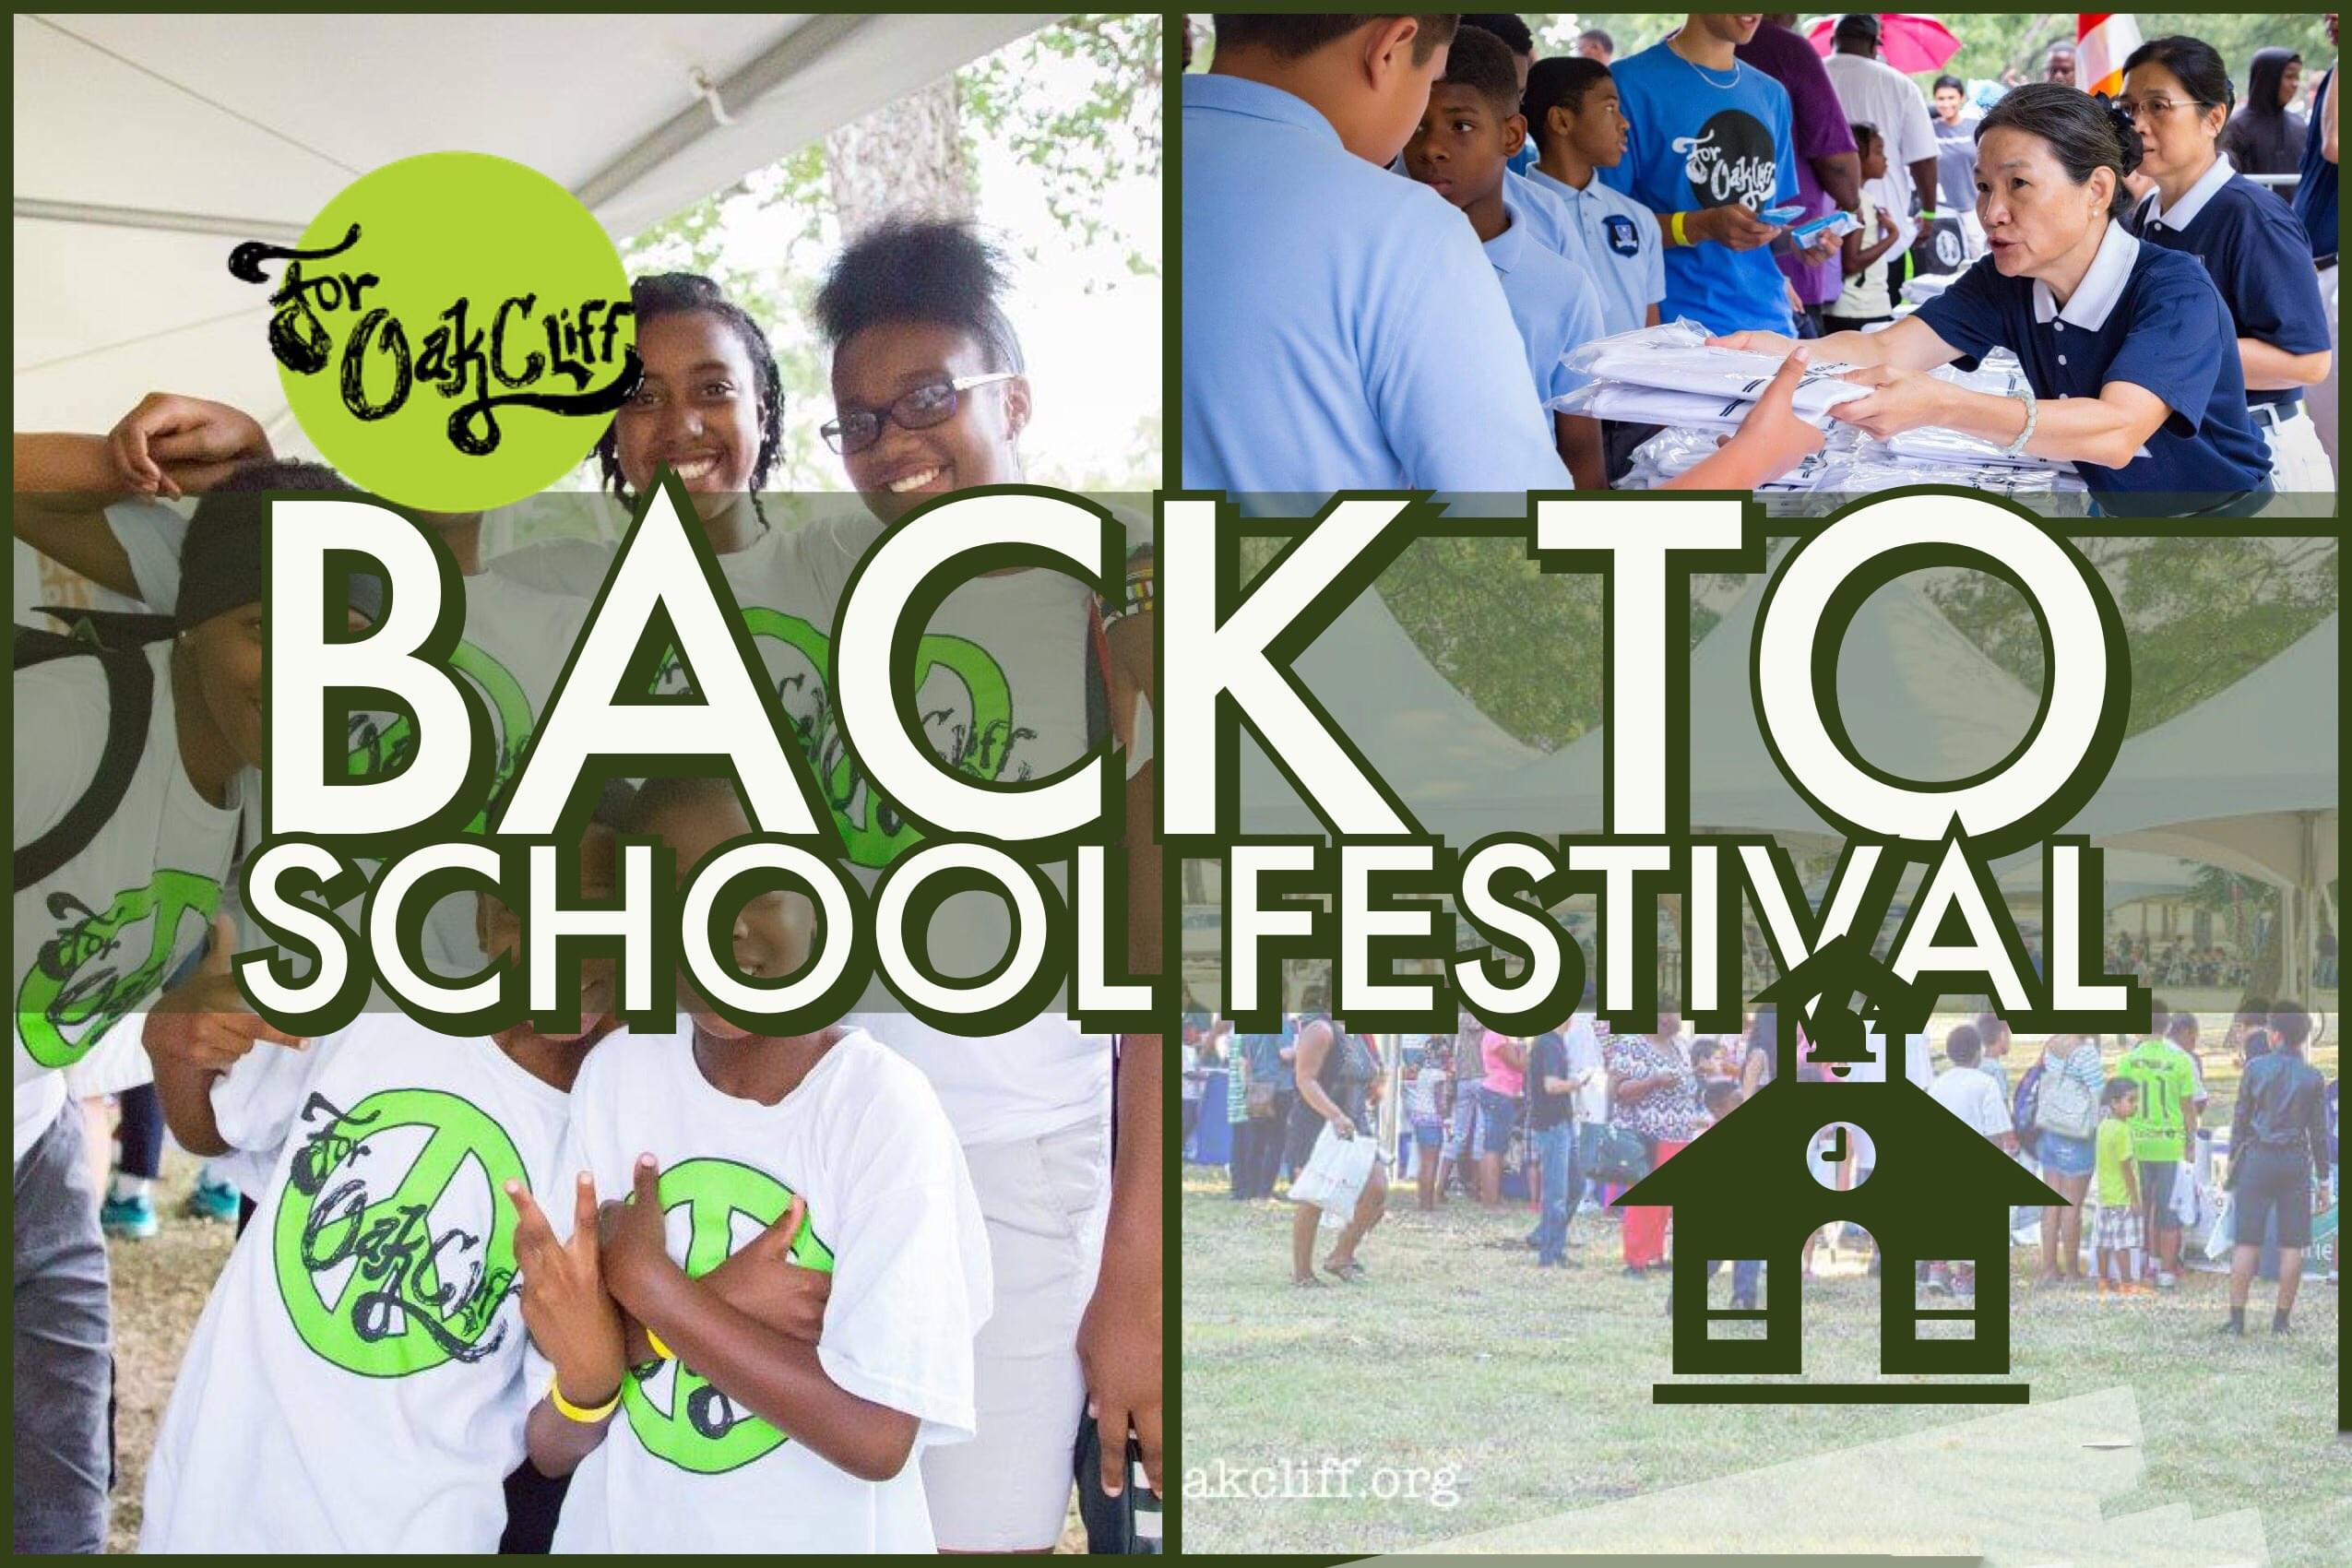 Cards, Supplies For Students at Back to School Festival